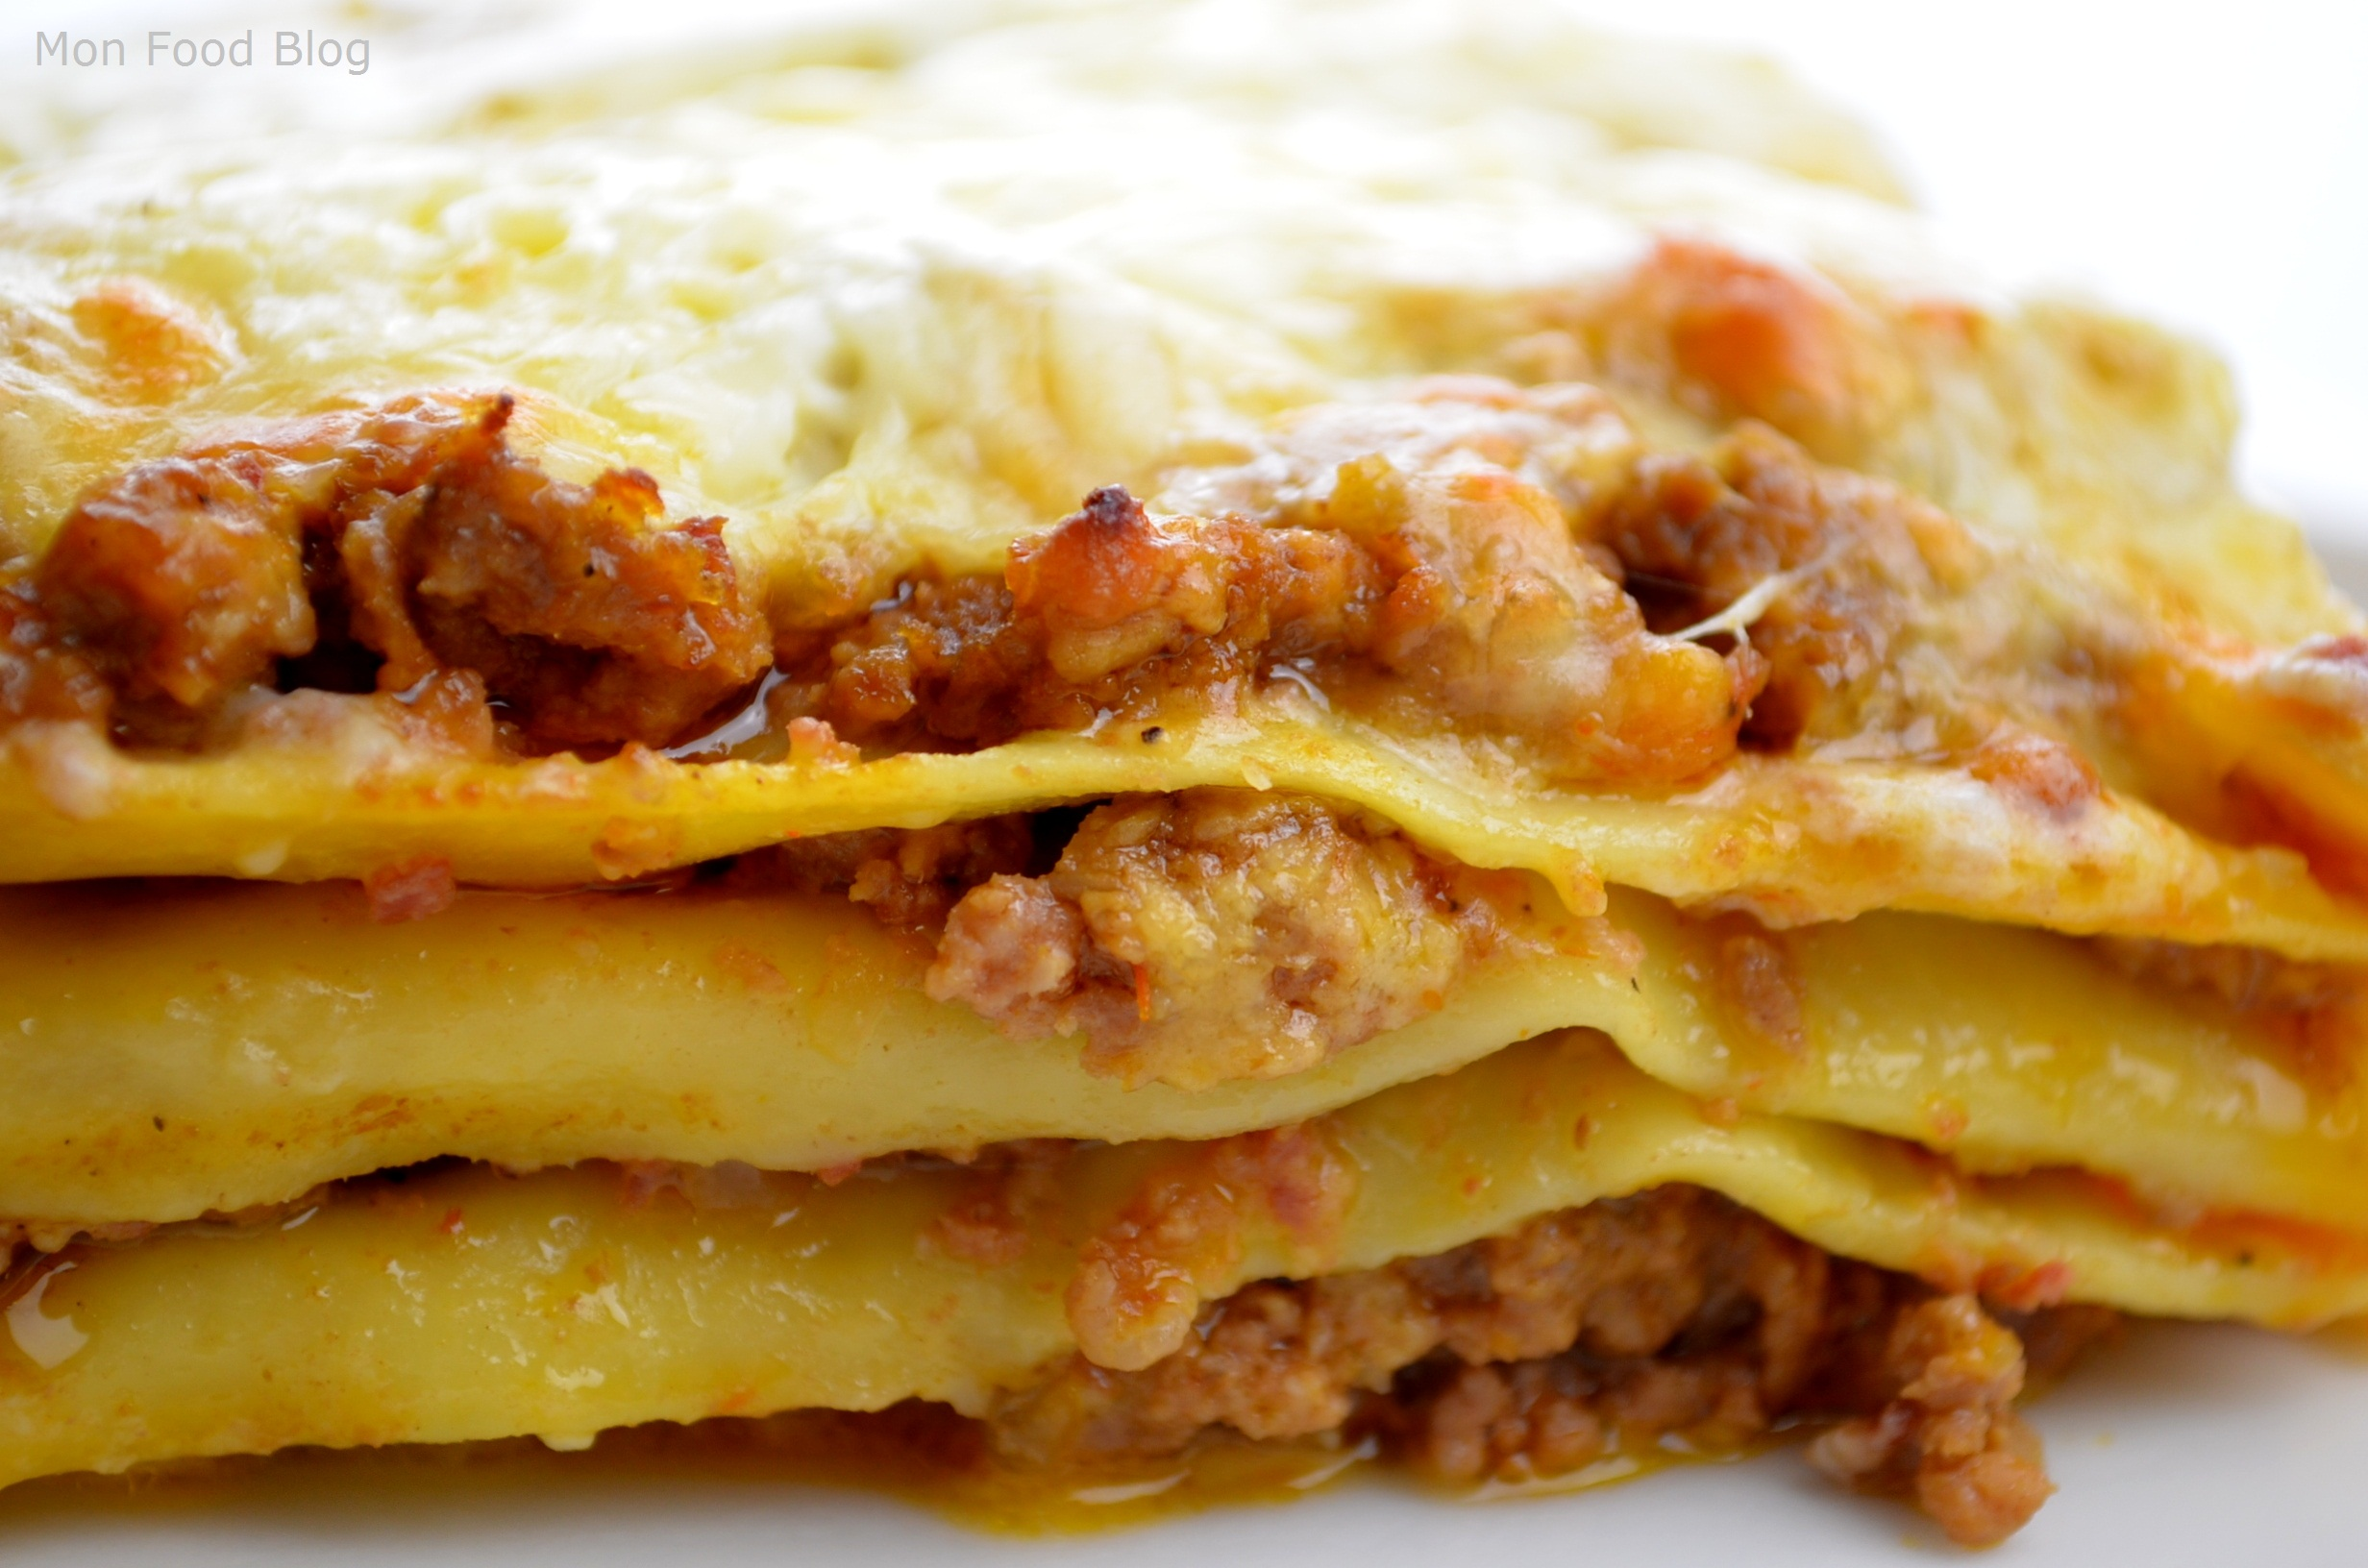 Published June 26, 2012 at 2464 × 1632 in Lasagne alla Bolognese